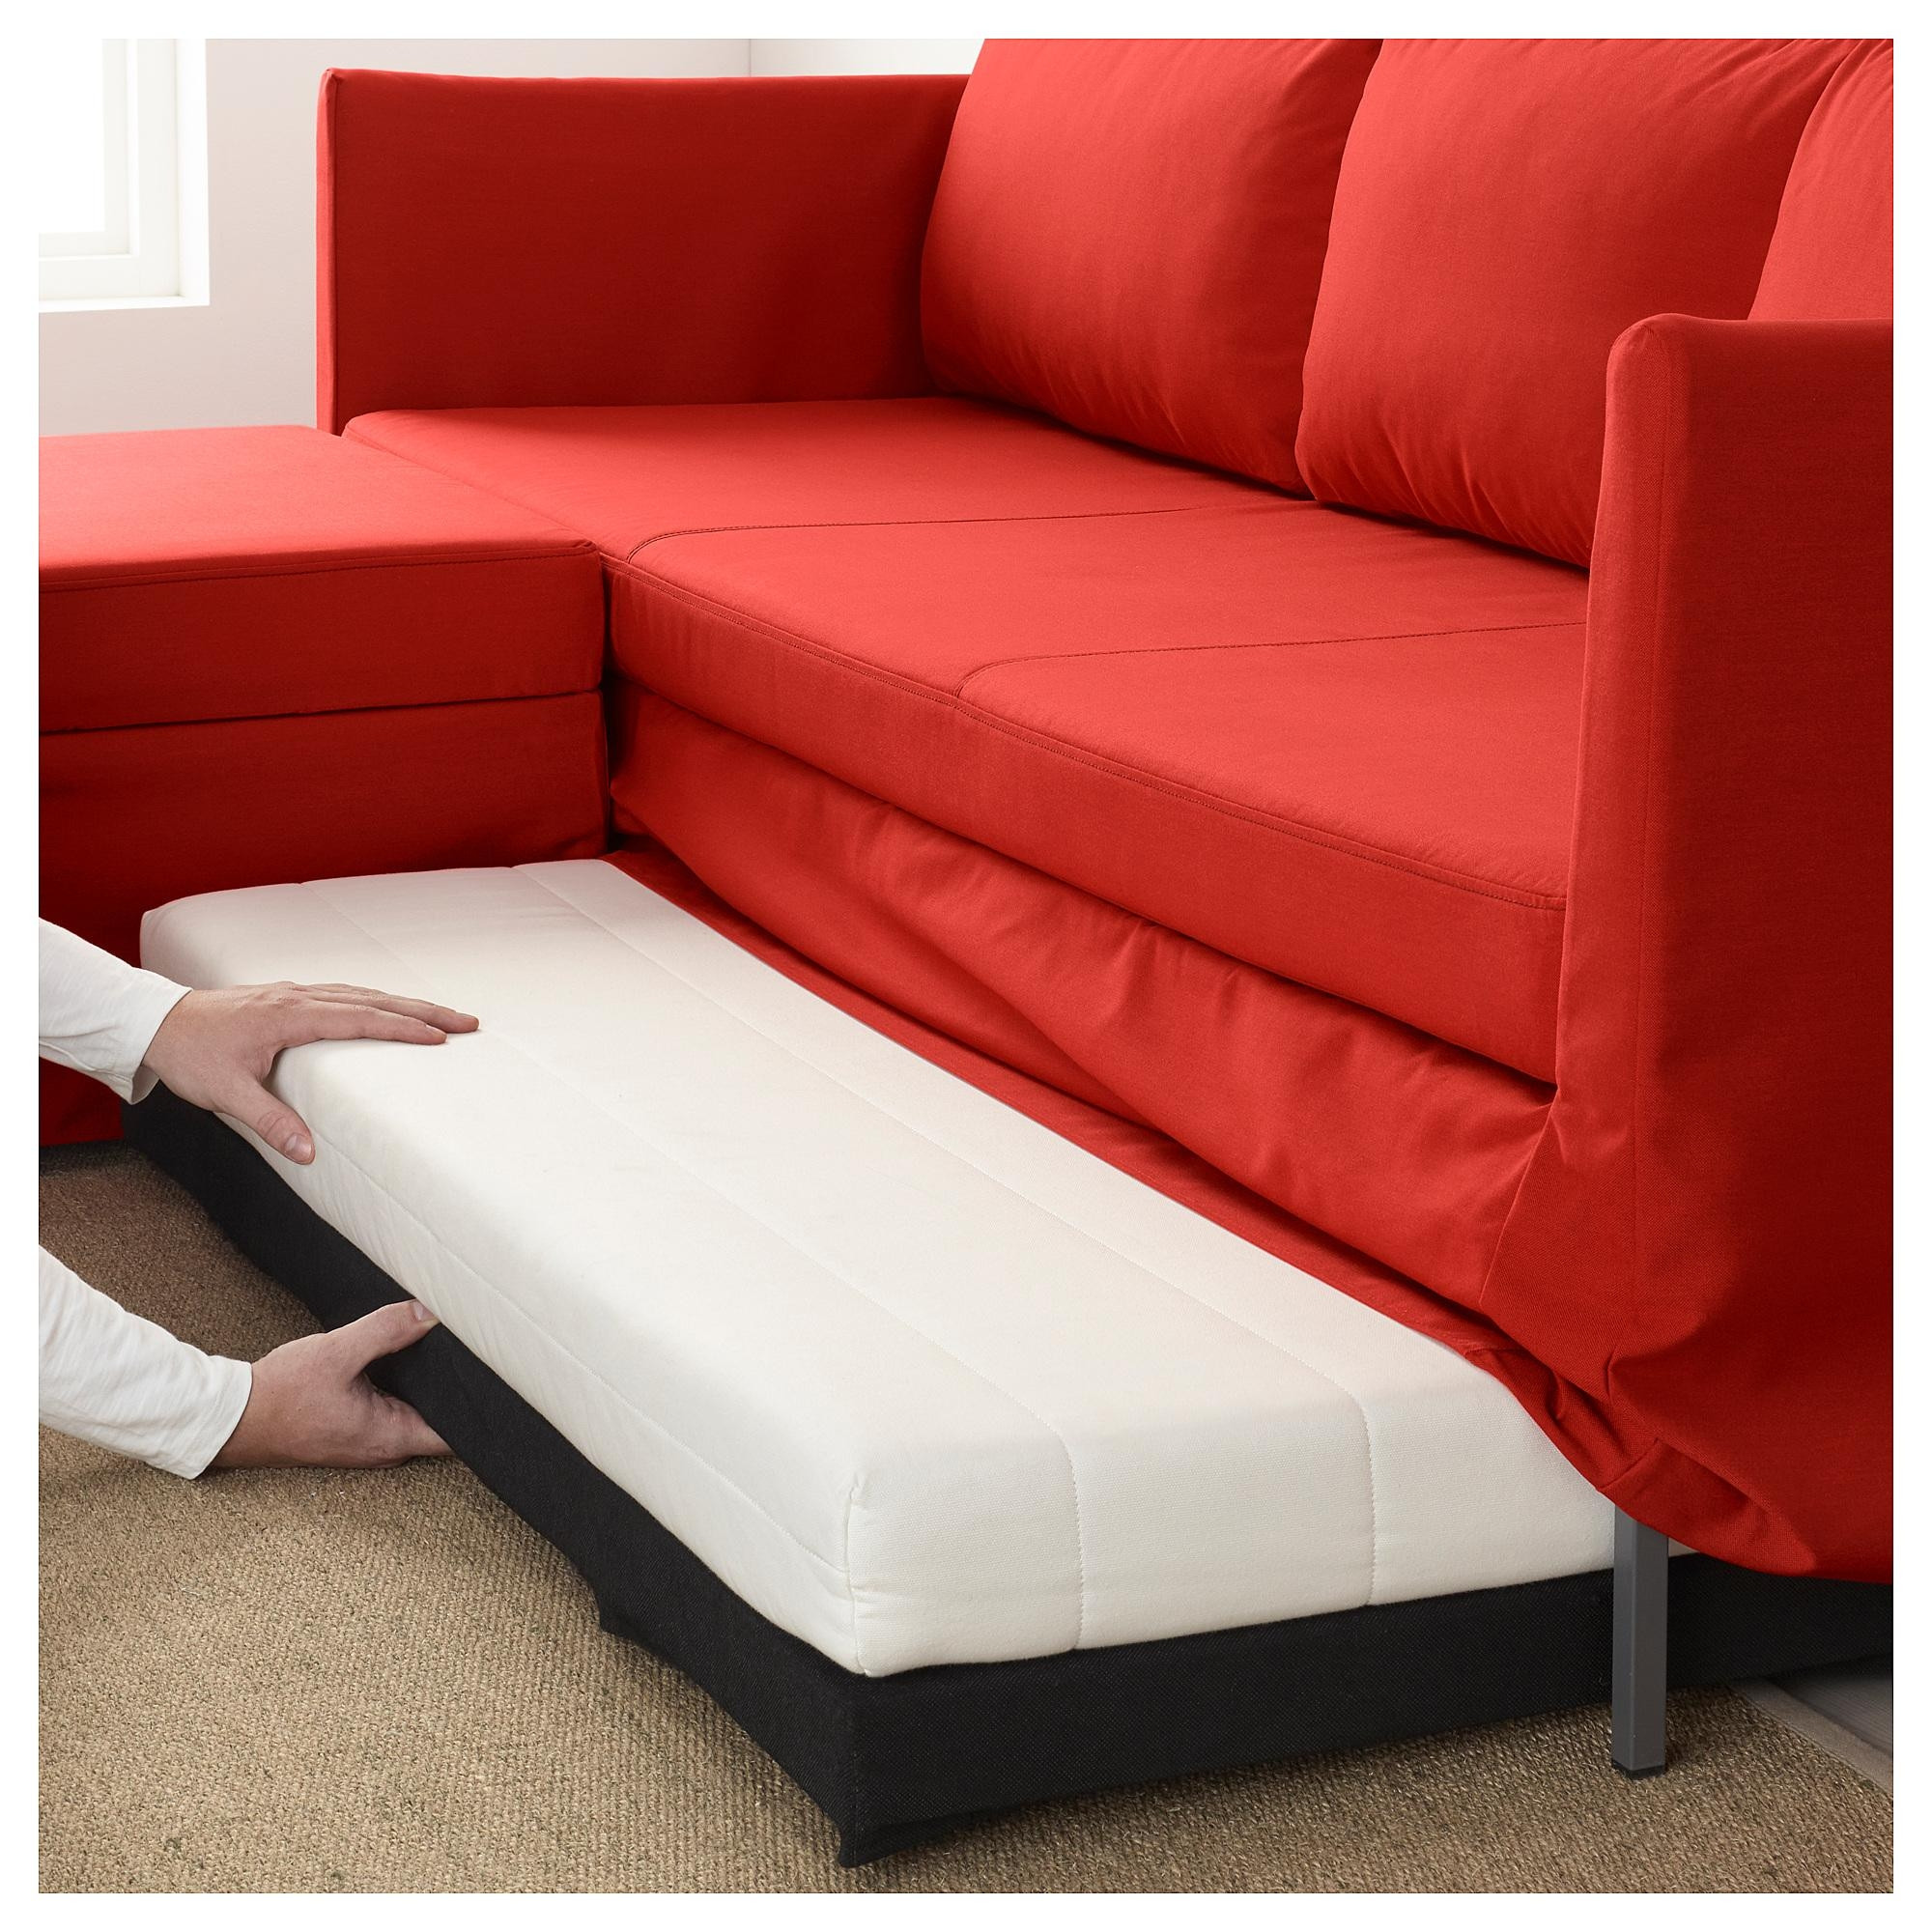 Best ideas about Red Sofa Beds . Save or Pin 20 Choices of Red Sofa Beds Ikea Now.